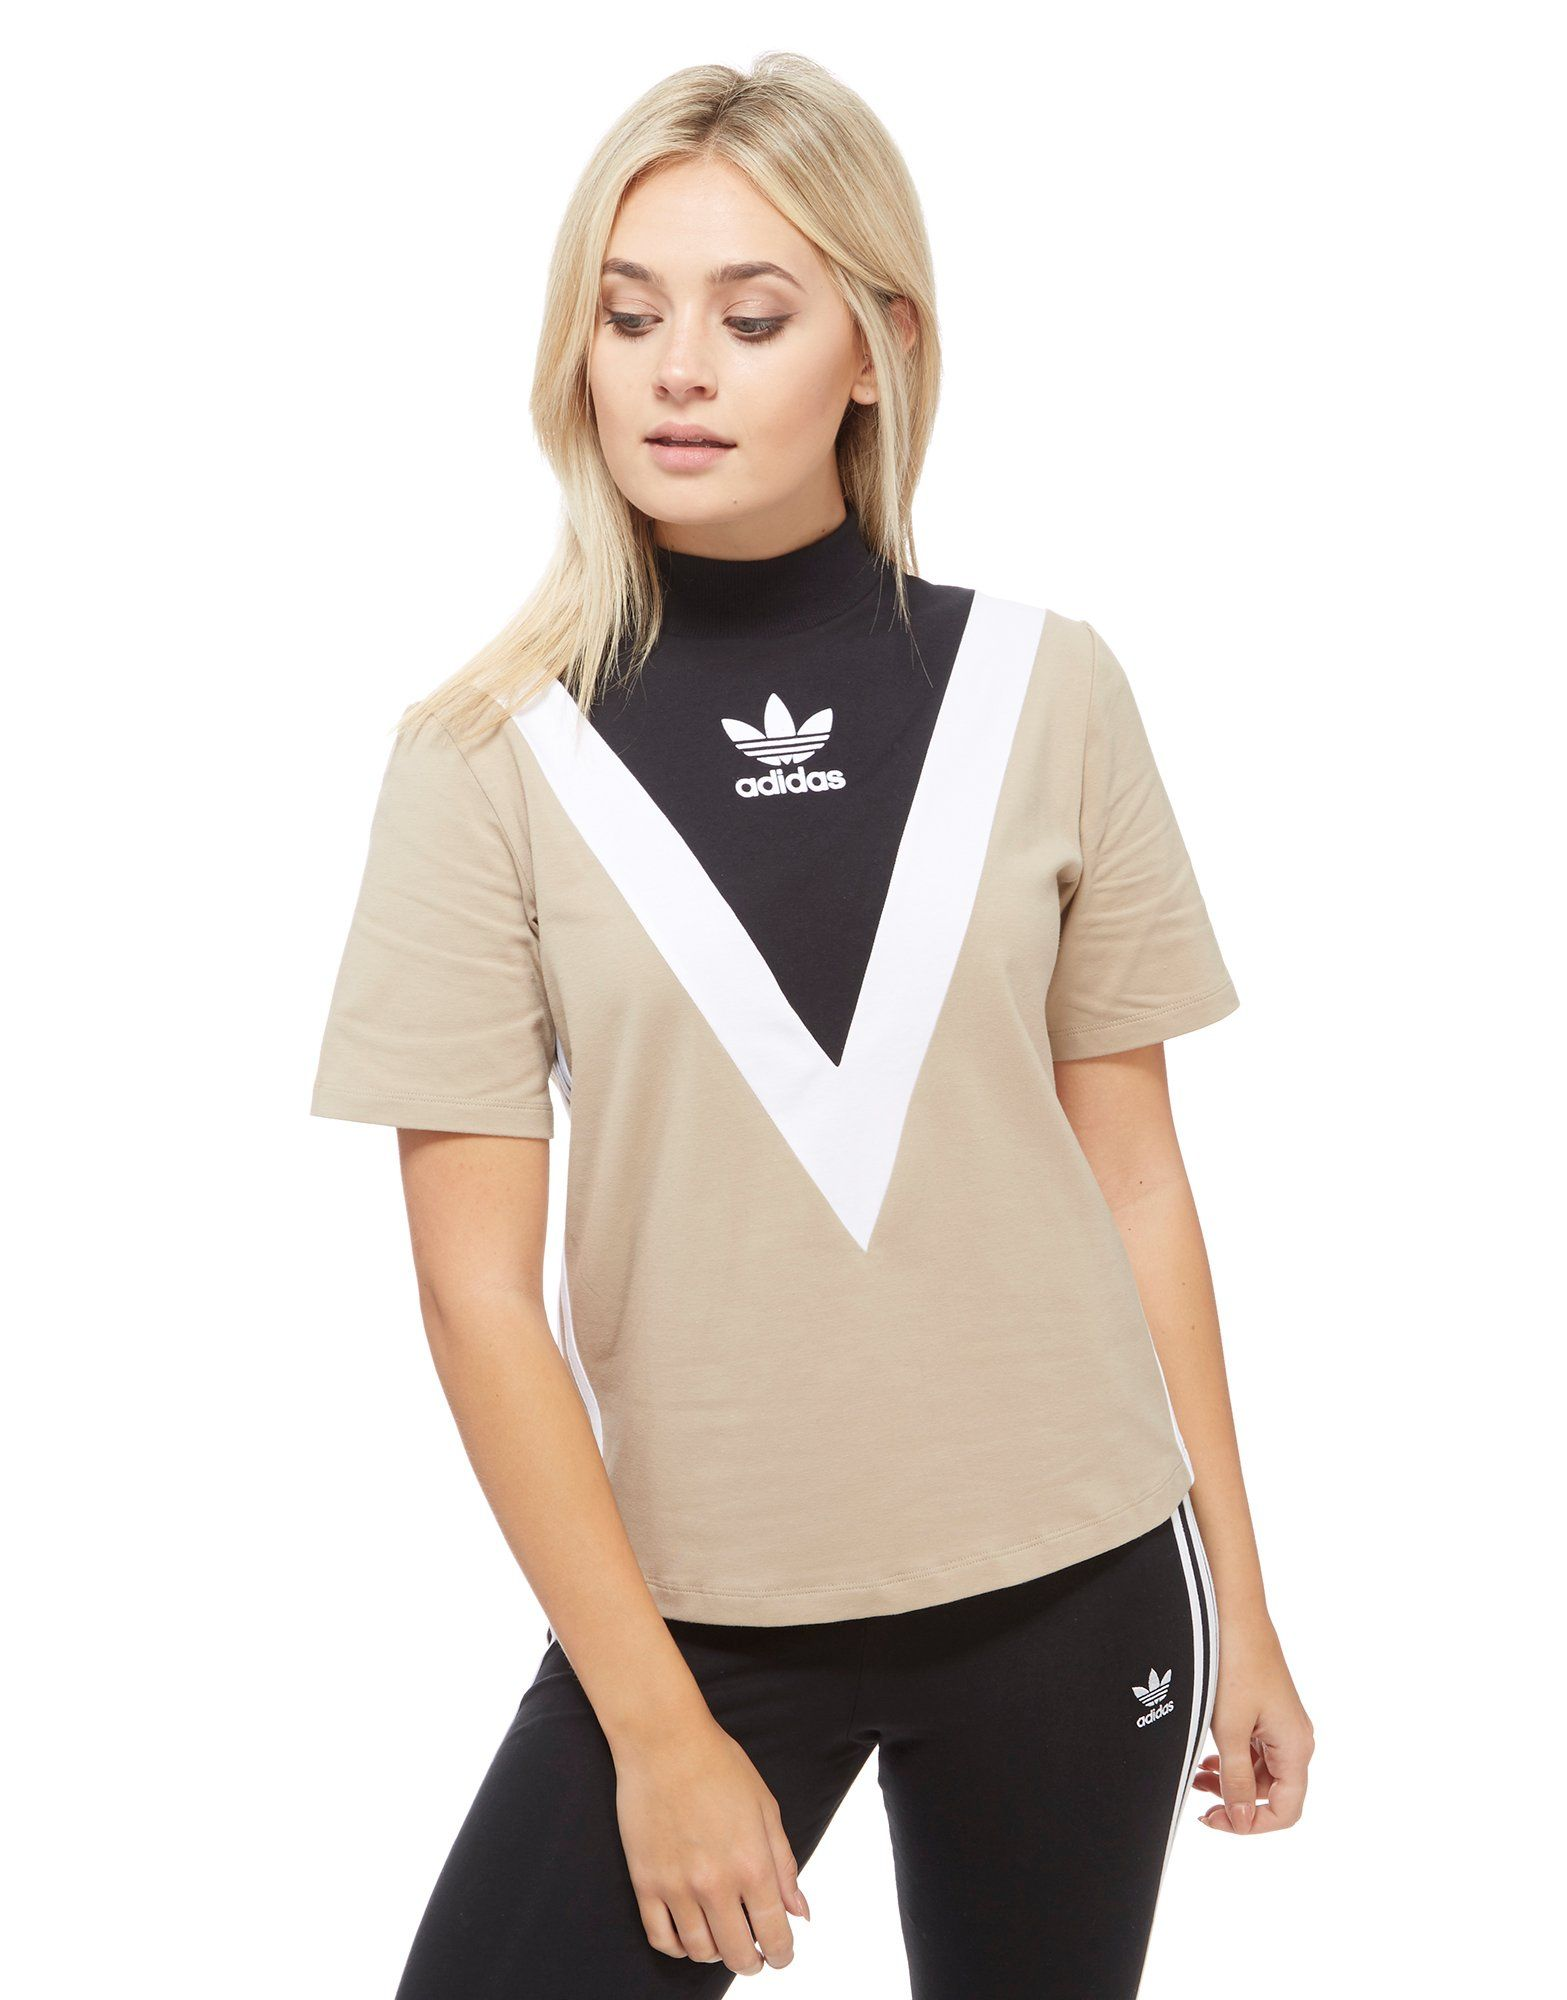 Adidas originals high neck chevron t shirt jd sports for High neck tee shirts